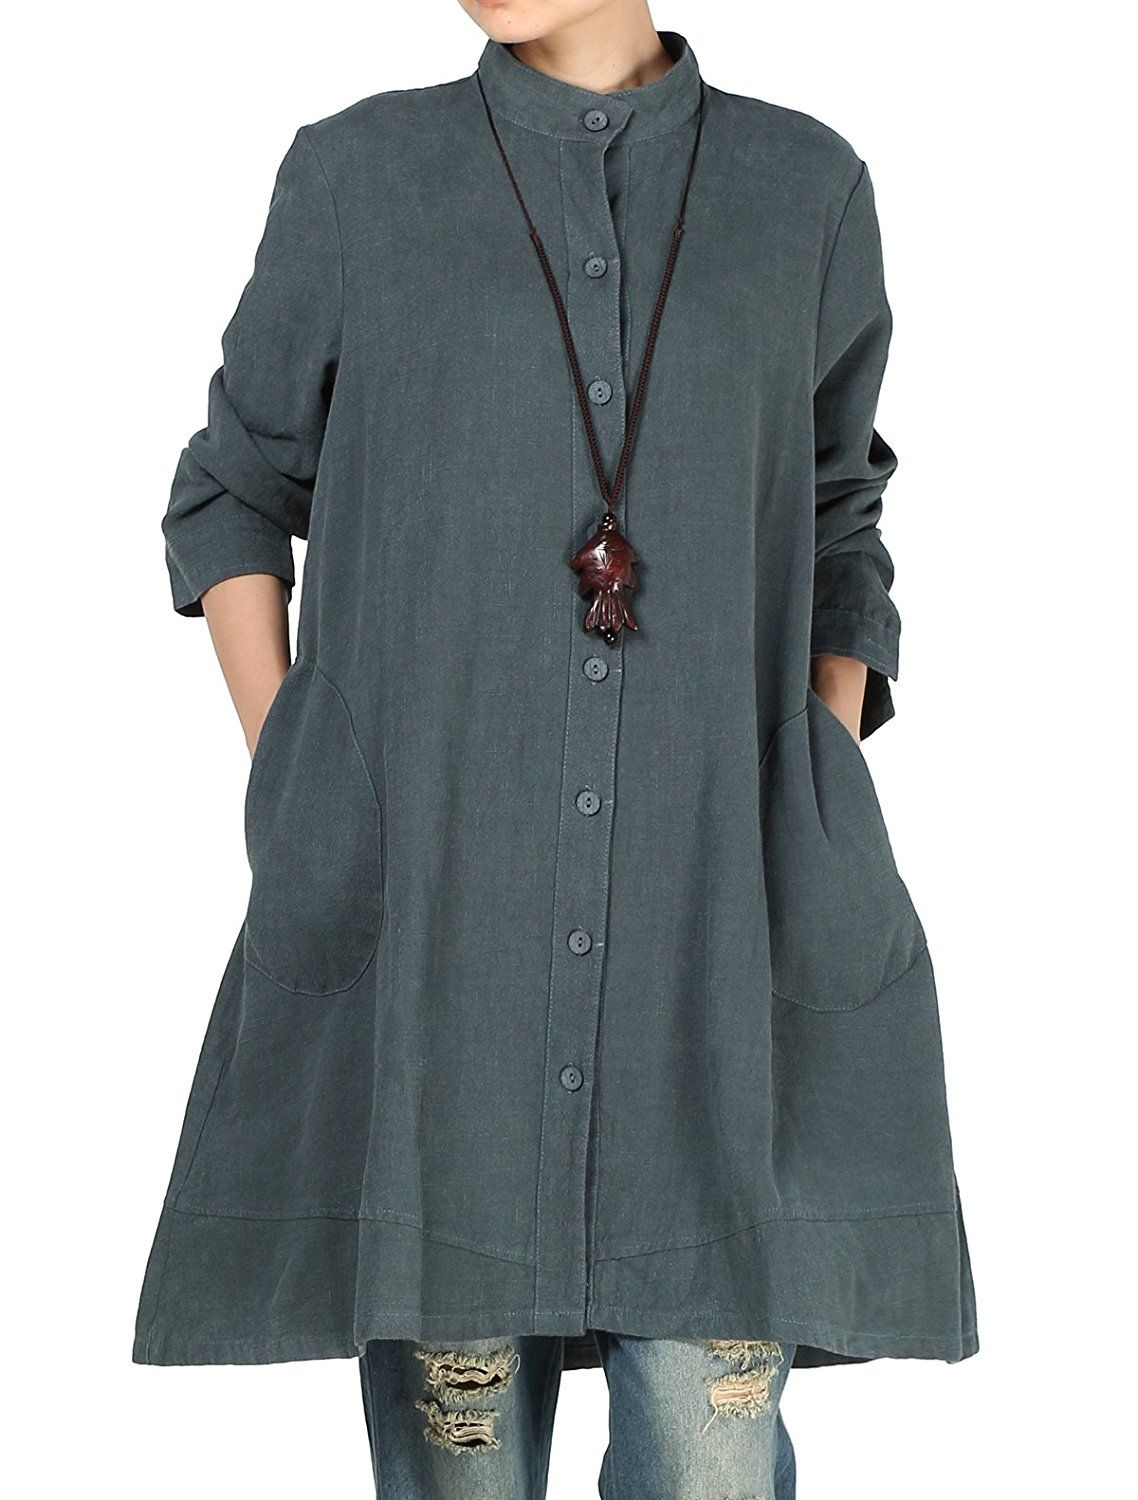 Mordenmiss Women's Cotton Linen Full Front Buttons Jacket Outfit with Pockets *** This is an Amazon Affiliate link. For more information, visit image link.